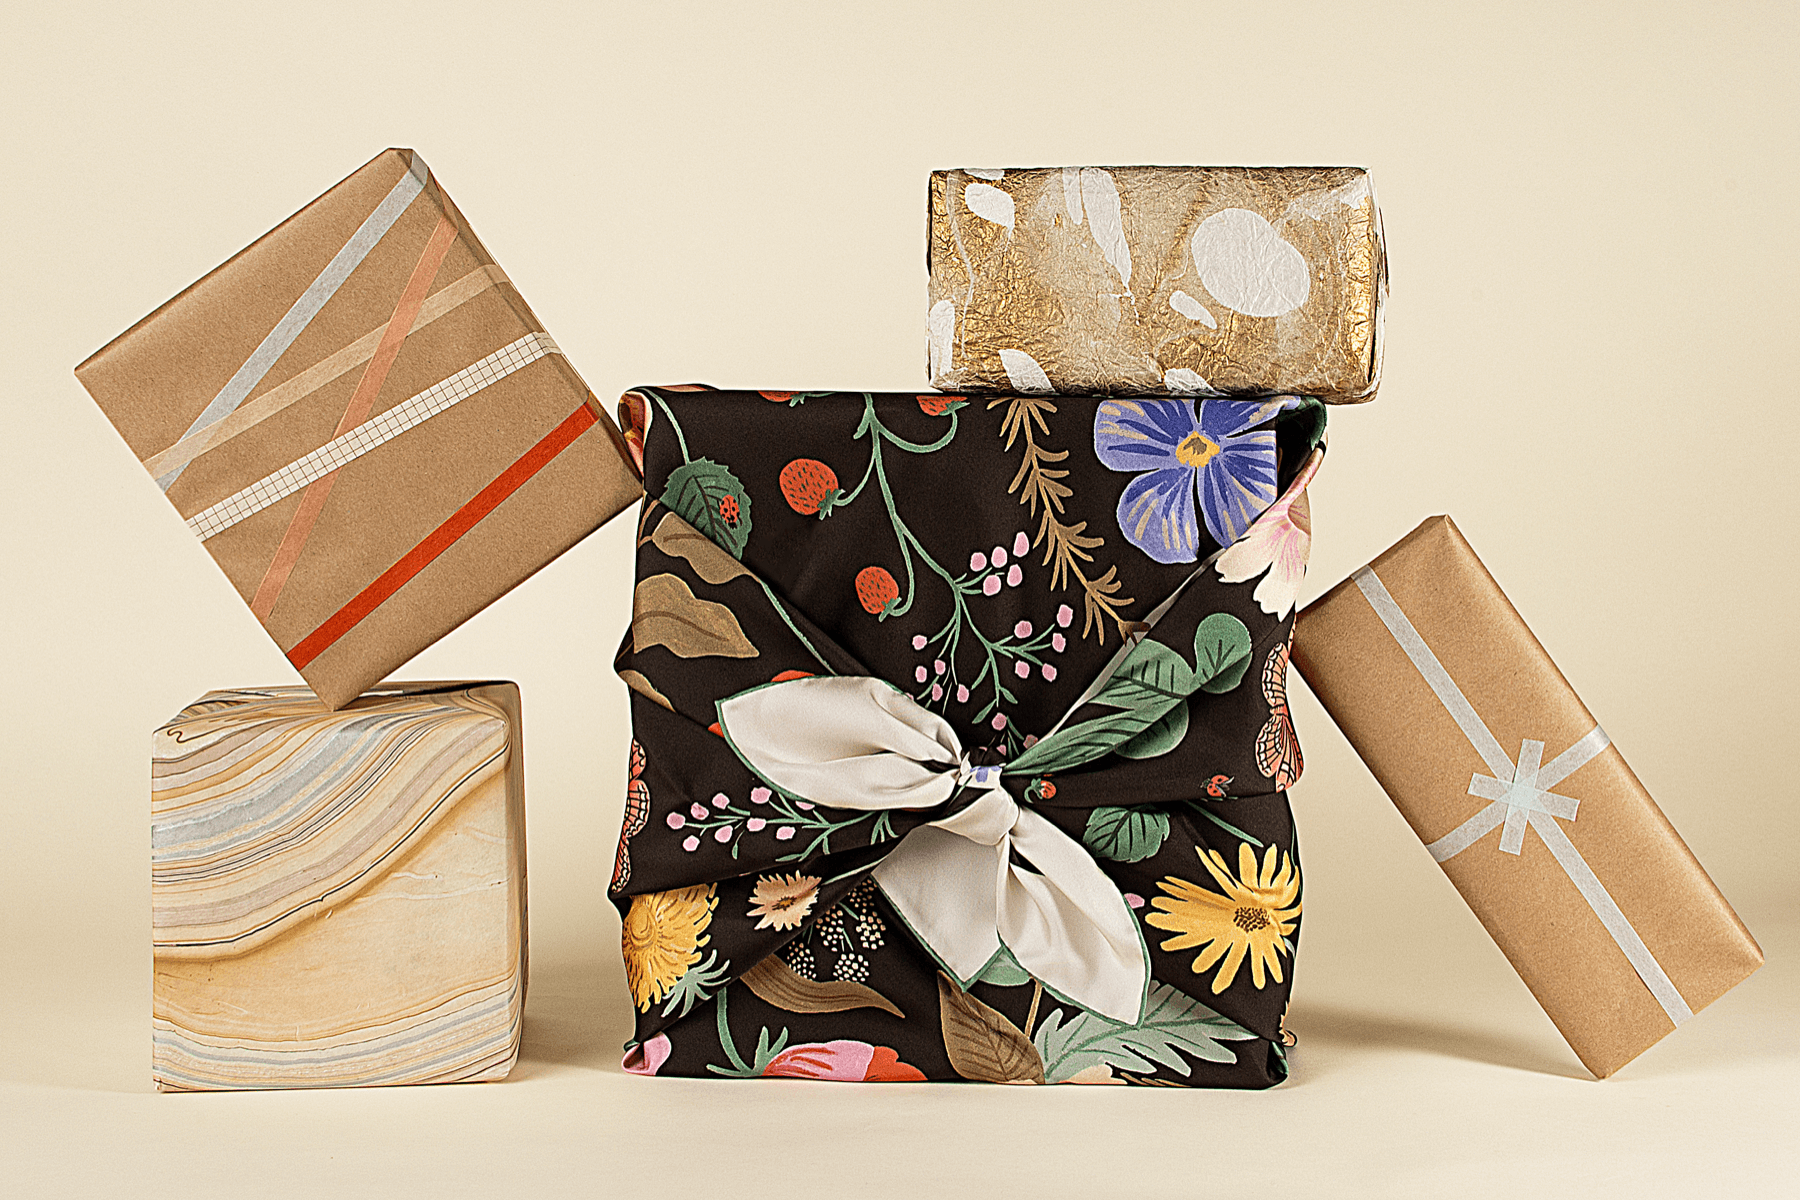 Stack of eco-friendly wrapped gifts on a beige background.